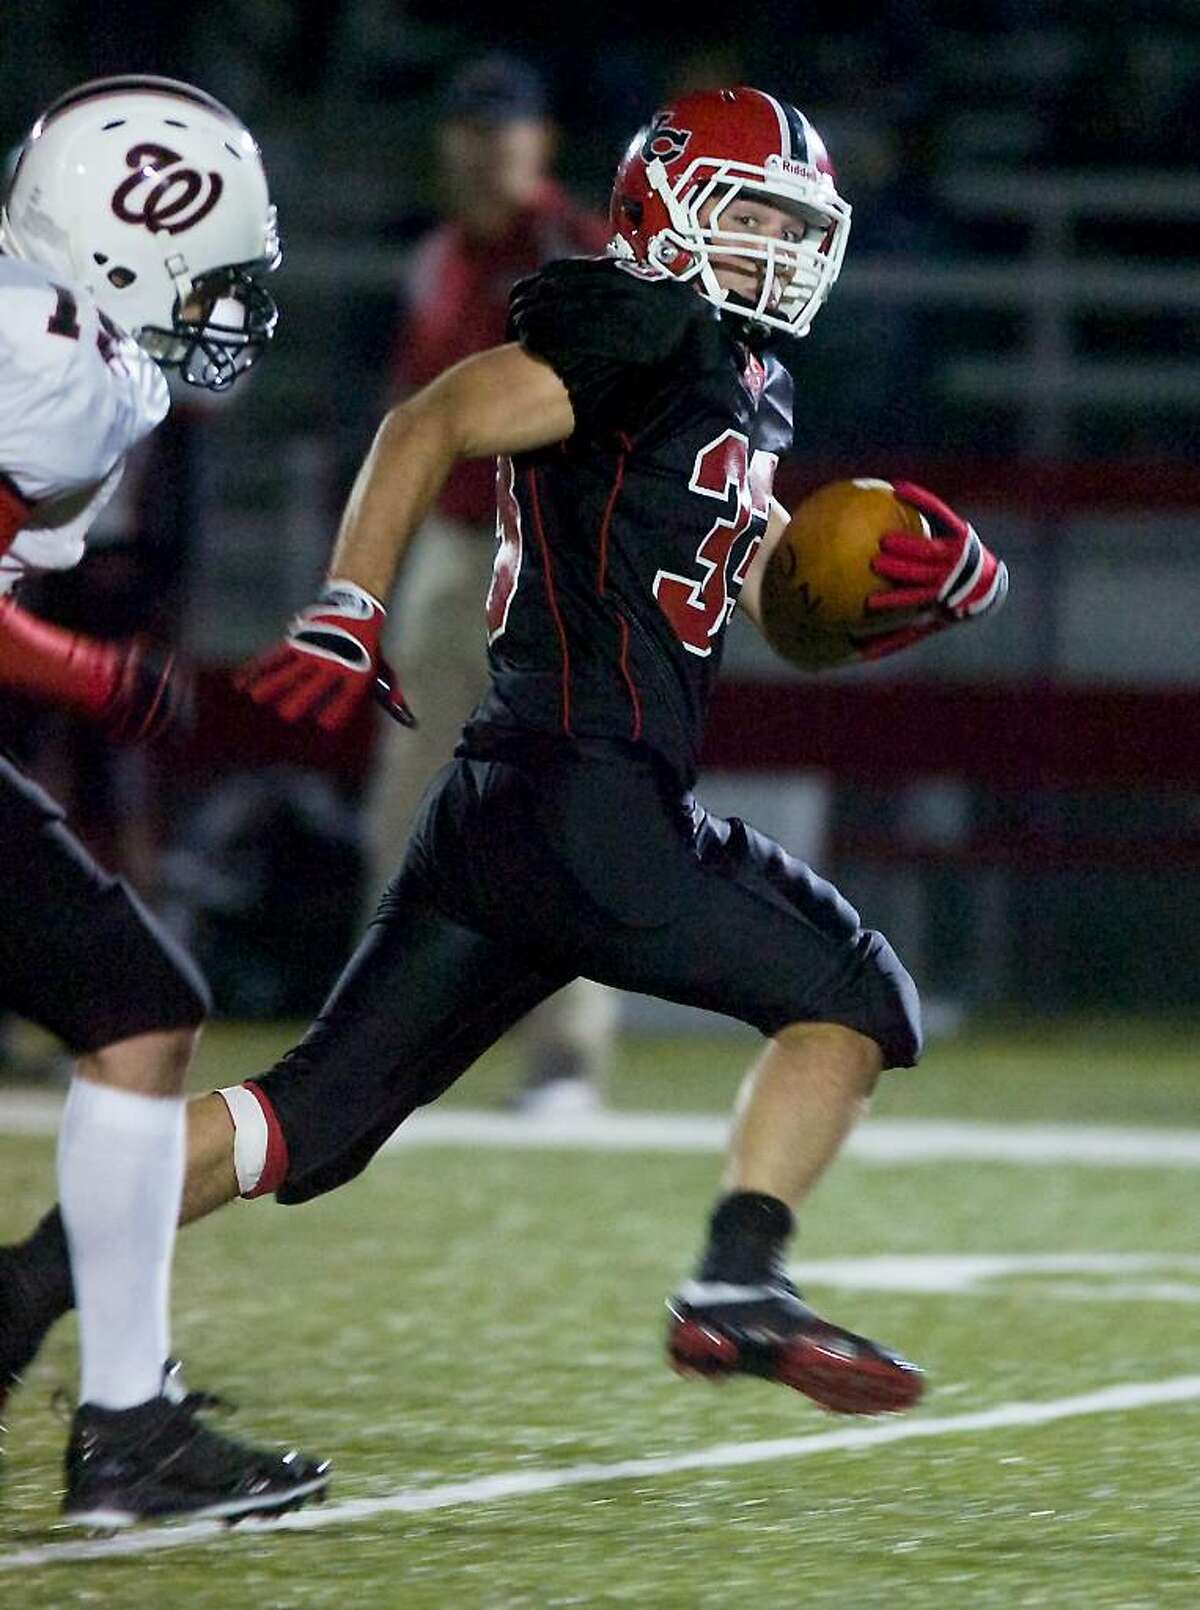 New Canaan High School's Cody Newton carries the ball against Fairfield Warde in football action at New Canaan.